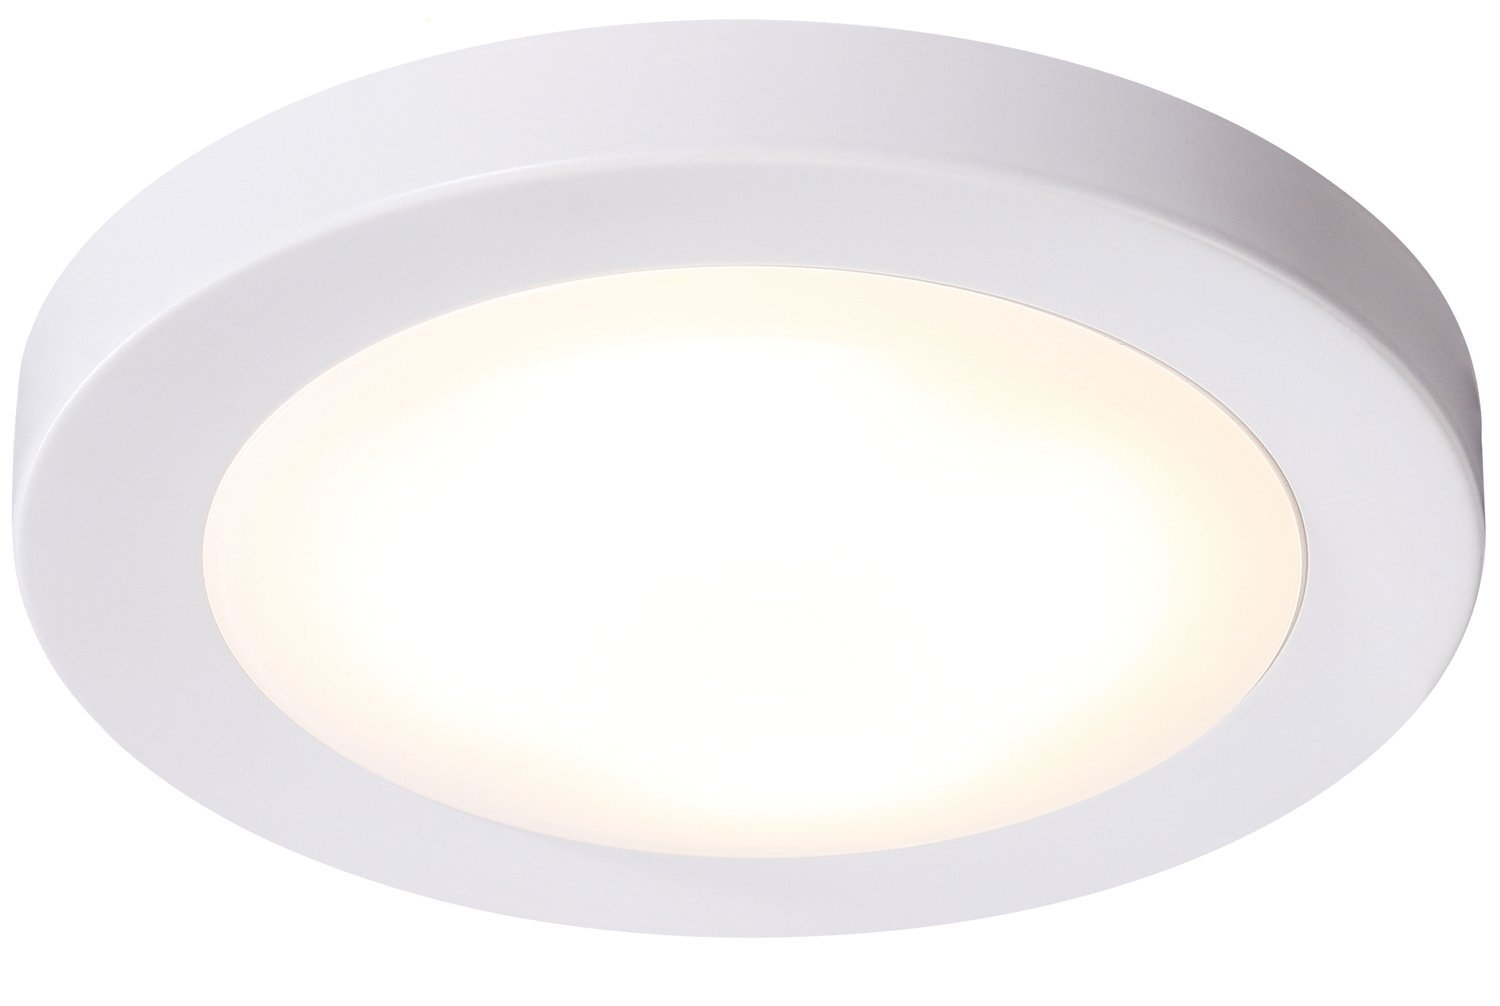 "Cloudy Bay LED Flush Mount Ceiling Light,7.5"",12W 840lm(100W Incandescent Equivalent),Dimmable,3000K Warm White,ETL,Wet Location,White Finish"